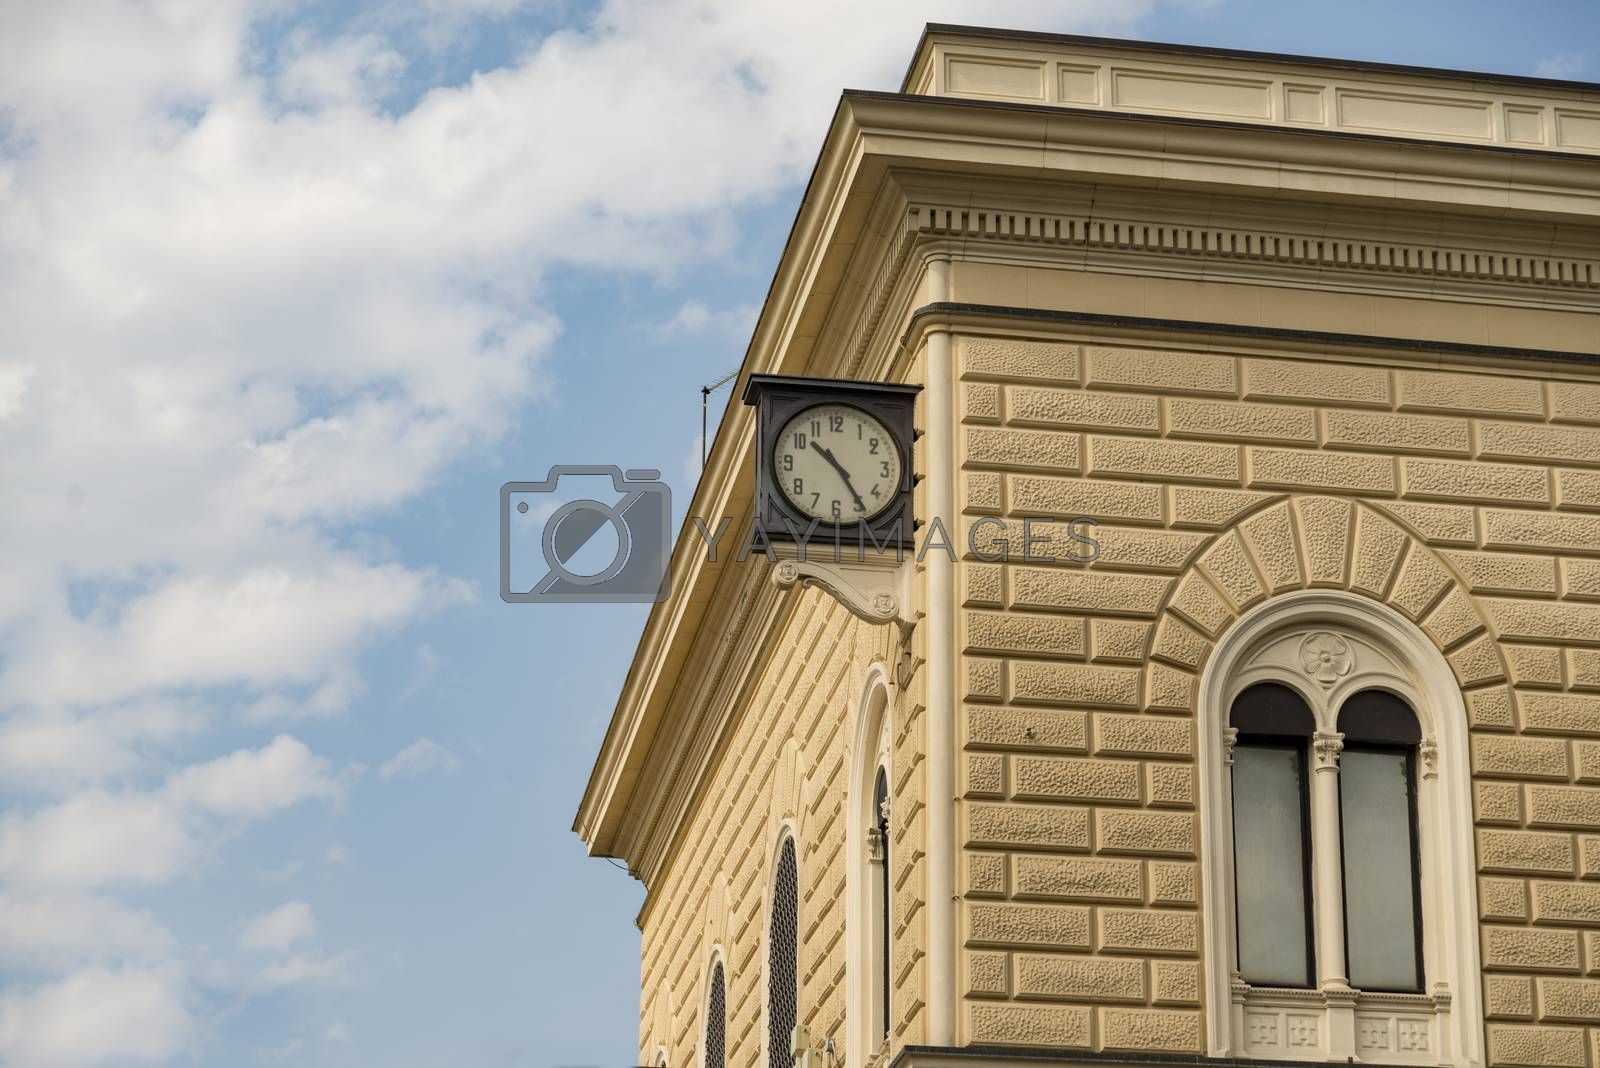 Royalty free image of Famous clock on Bologna Centrale railway station by edella